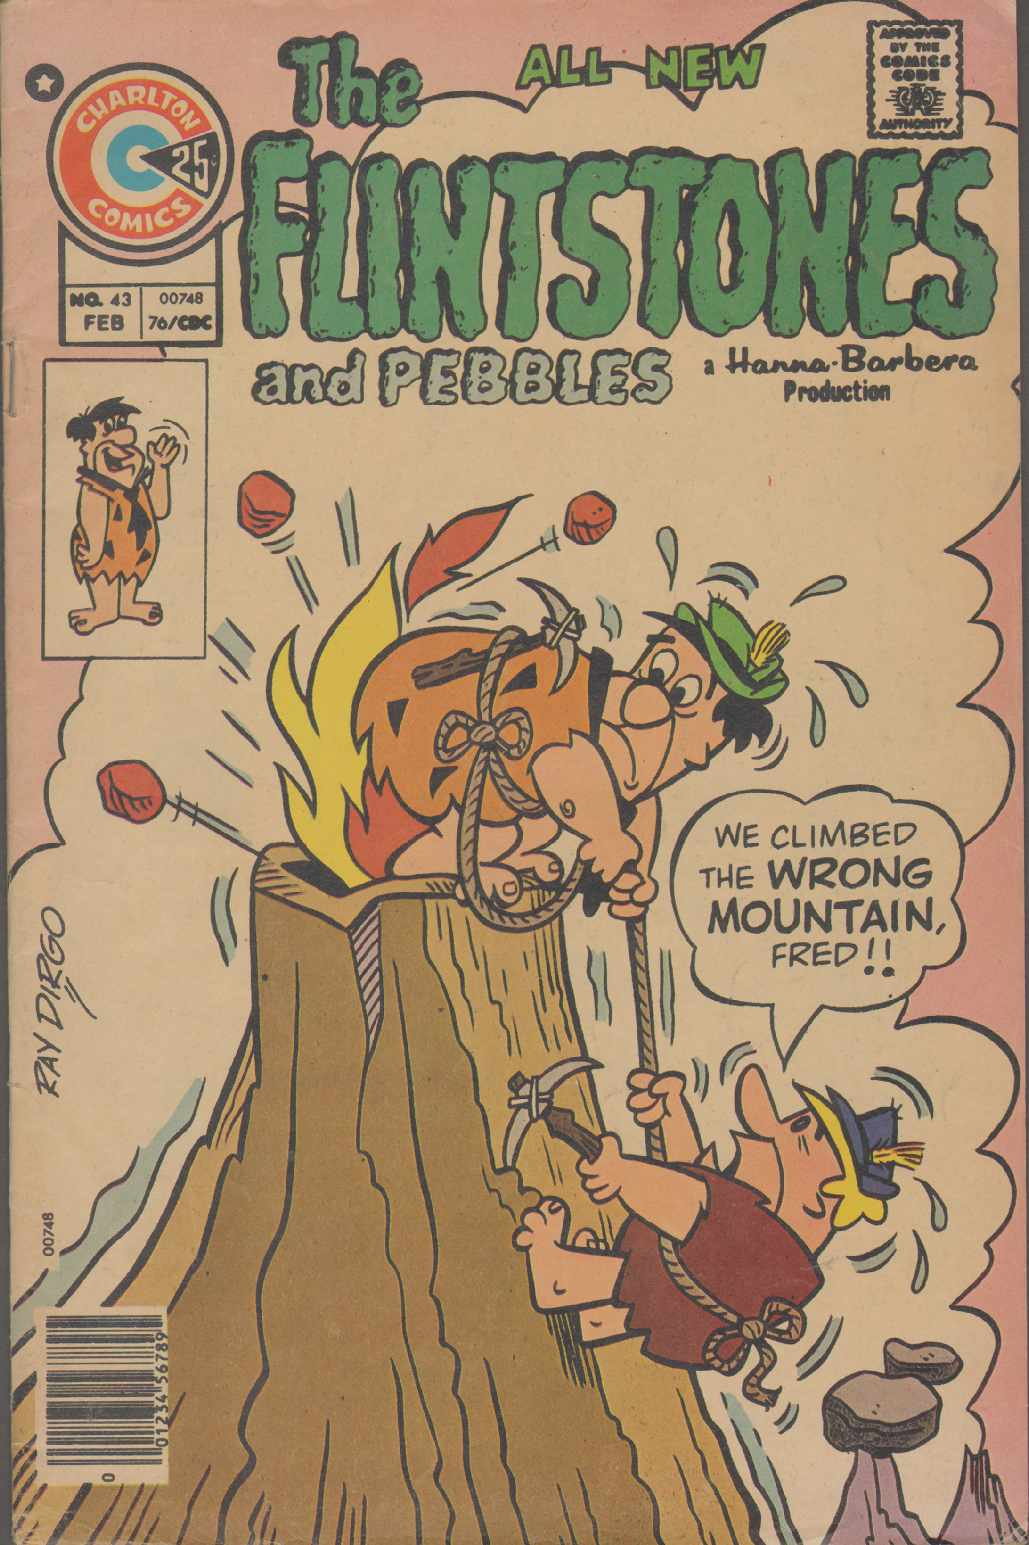 THE ALL NEW FLINTSTONES And Pebbles Vol. 7, No. 43 February 1976, Charlton Comics